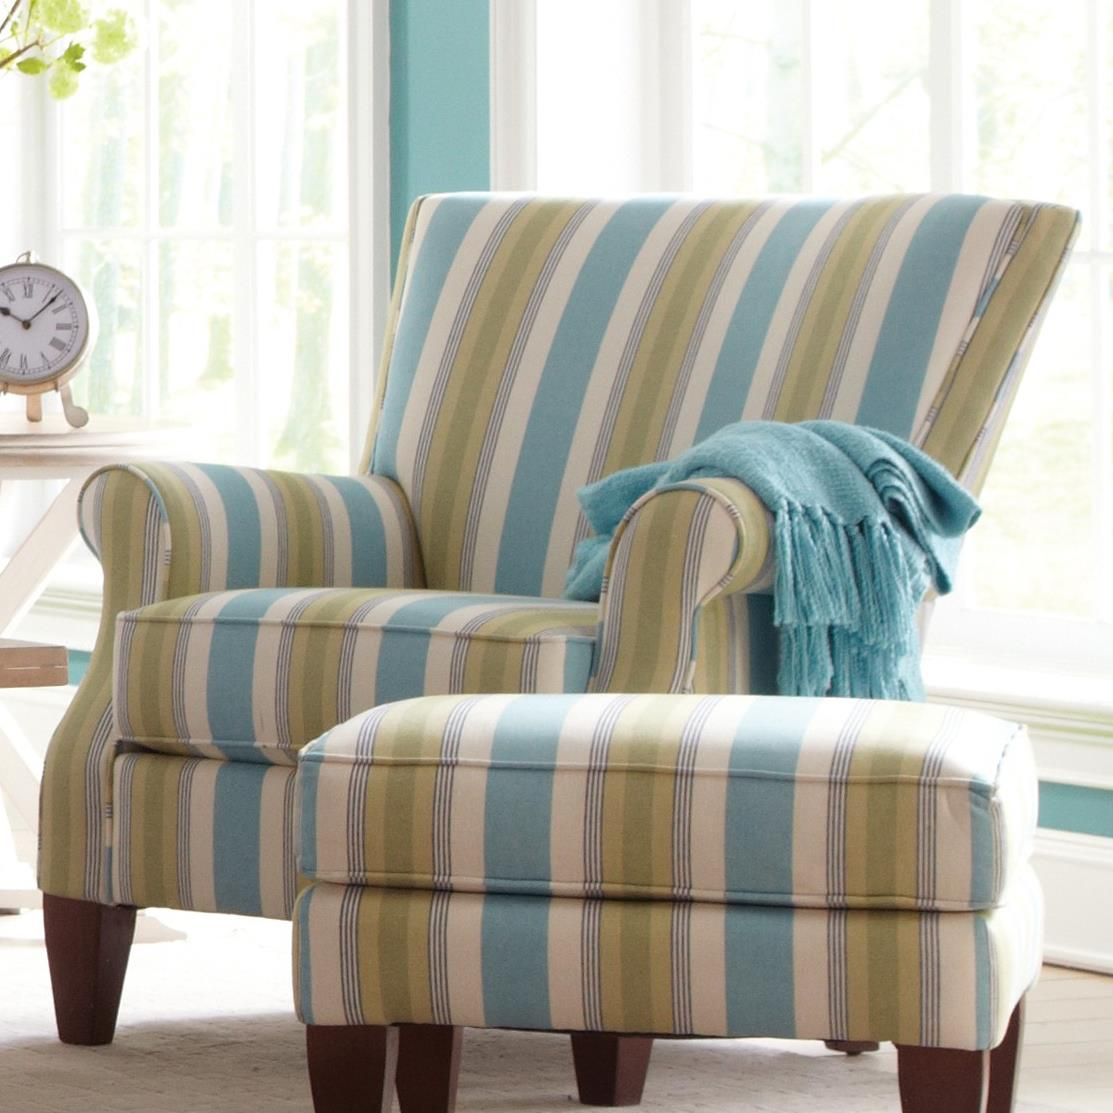 Accent Chairs Contemporary Upholstered Chair by Craftmaster at Baer's Furniture